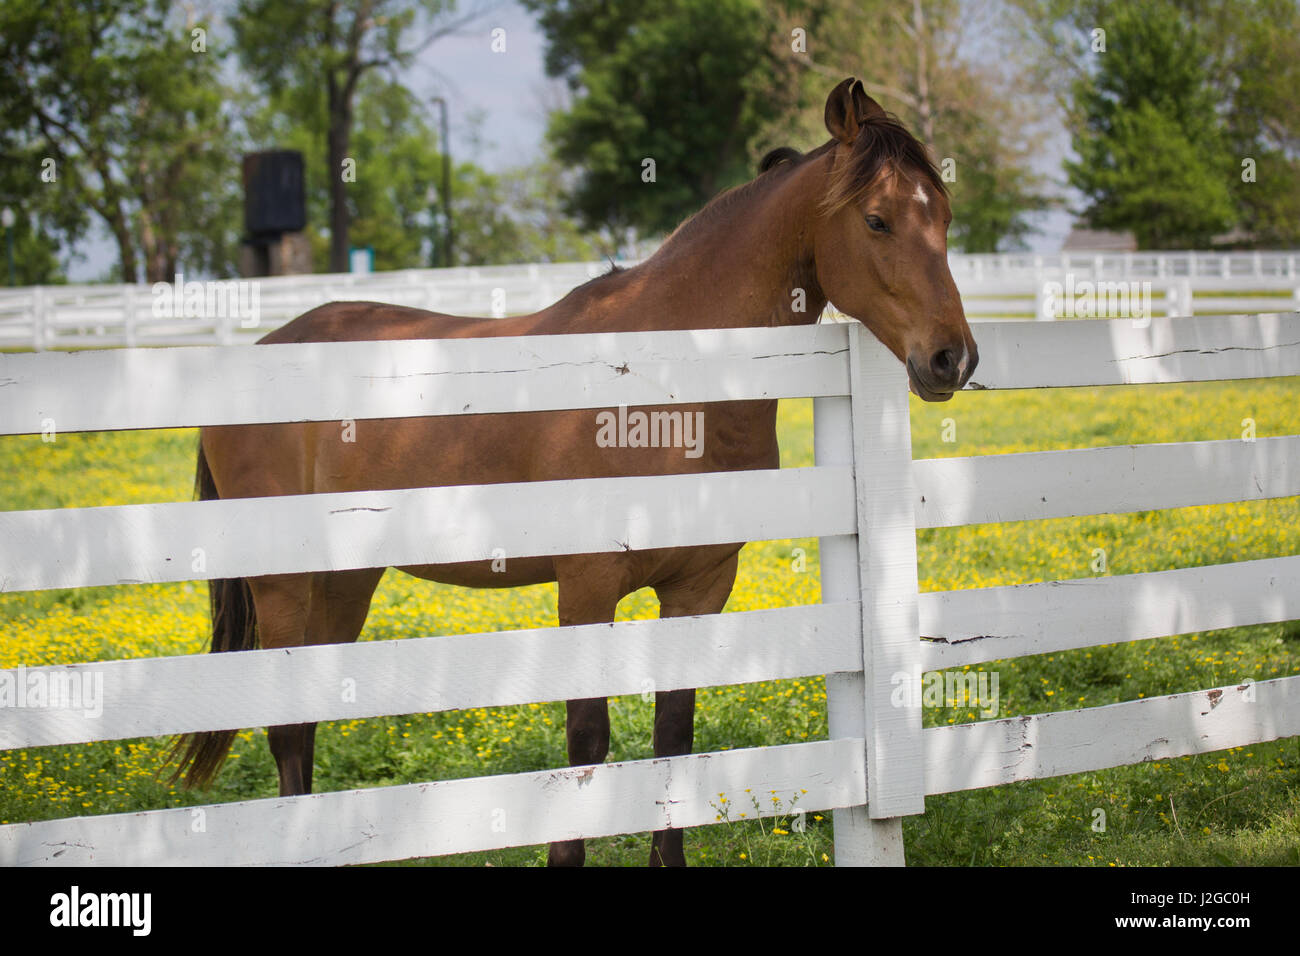 USA, Kentucky, Lexington. Horse at fence. Credit as: Don Grall / Jaynes Gallery / DanitaDelimont.com - Stock Image